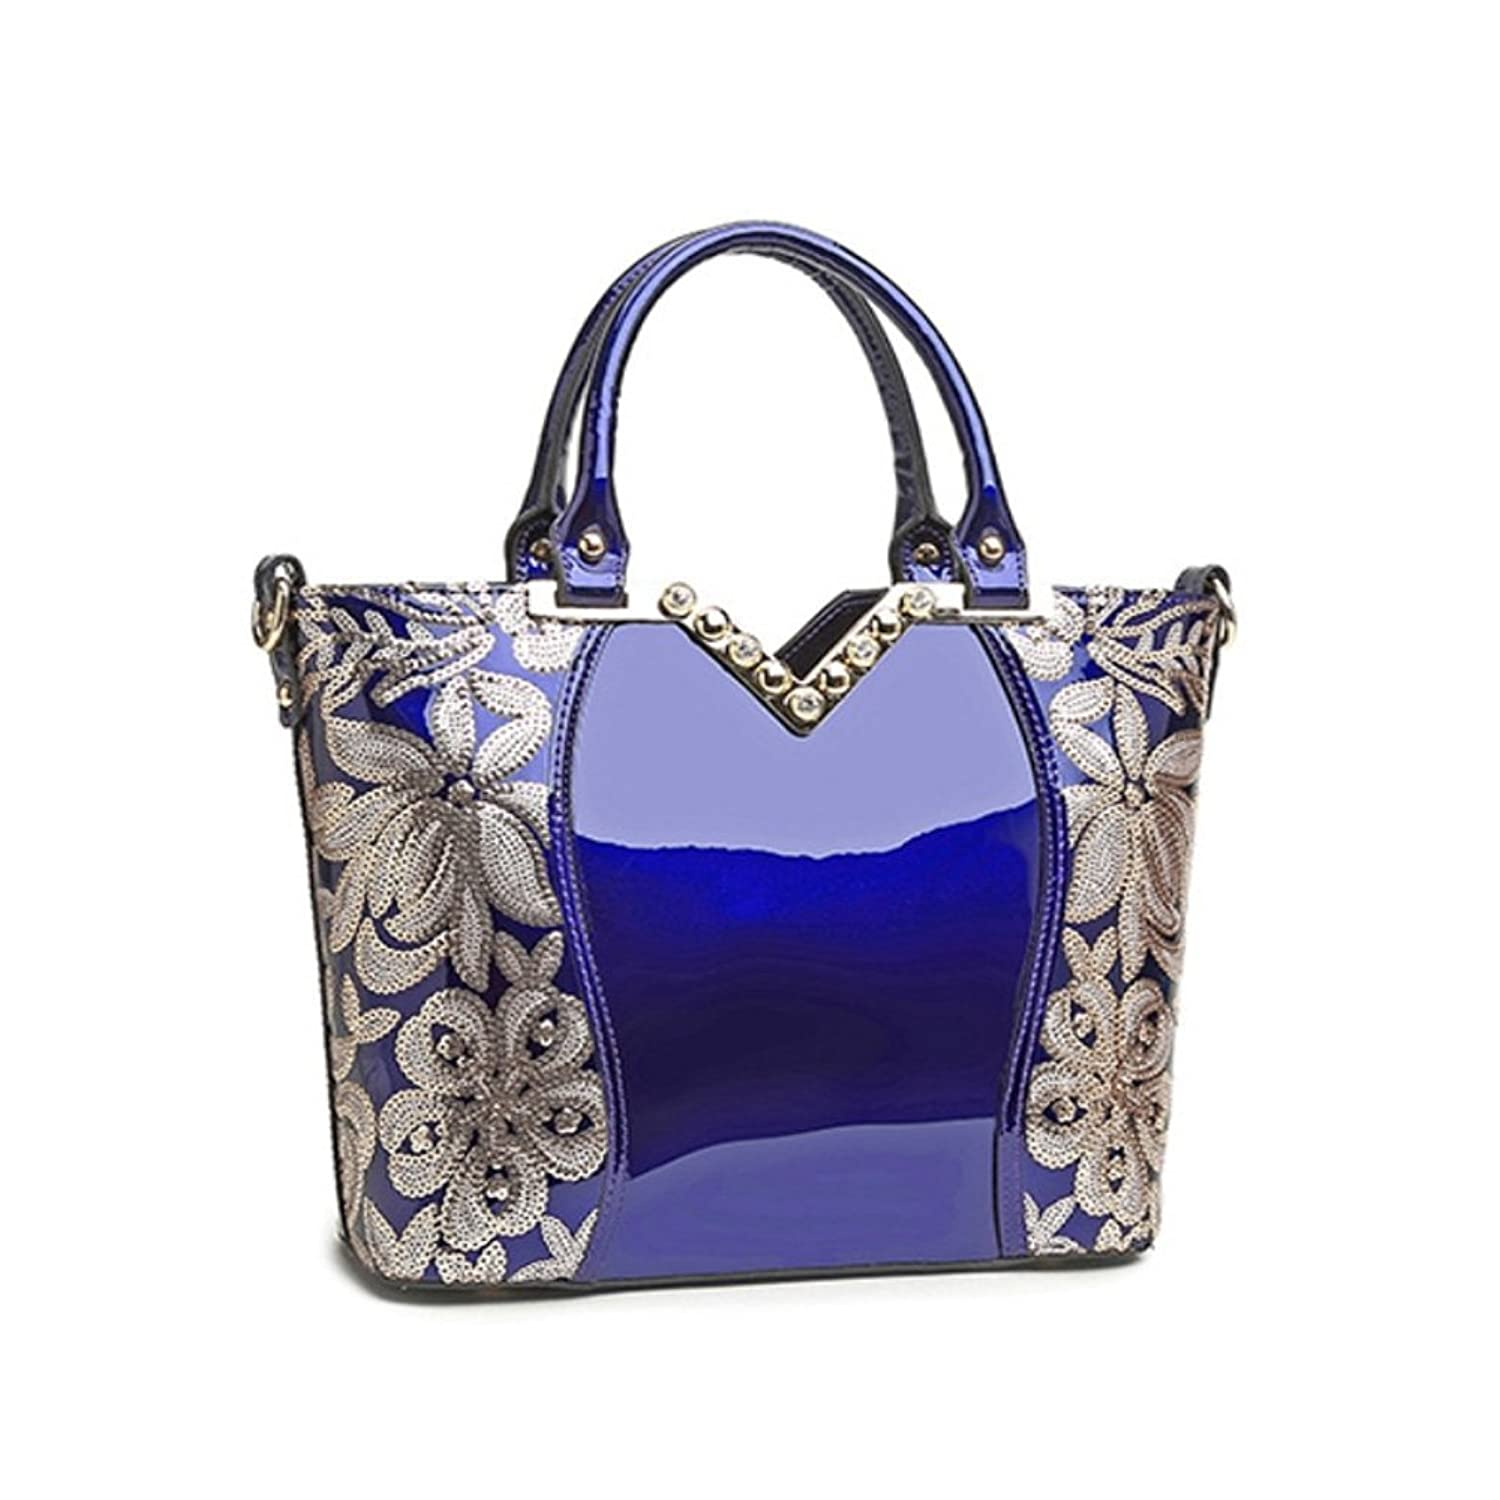 PPSTAR HB700045 Fashion PU Leather Korean Version Women's Handbag,Square Cross-Section Diana Package